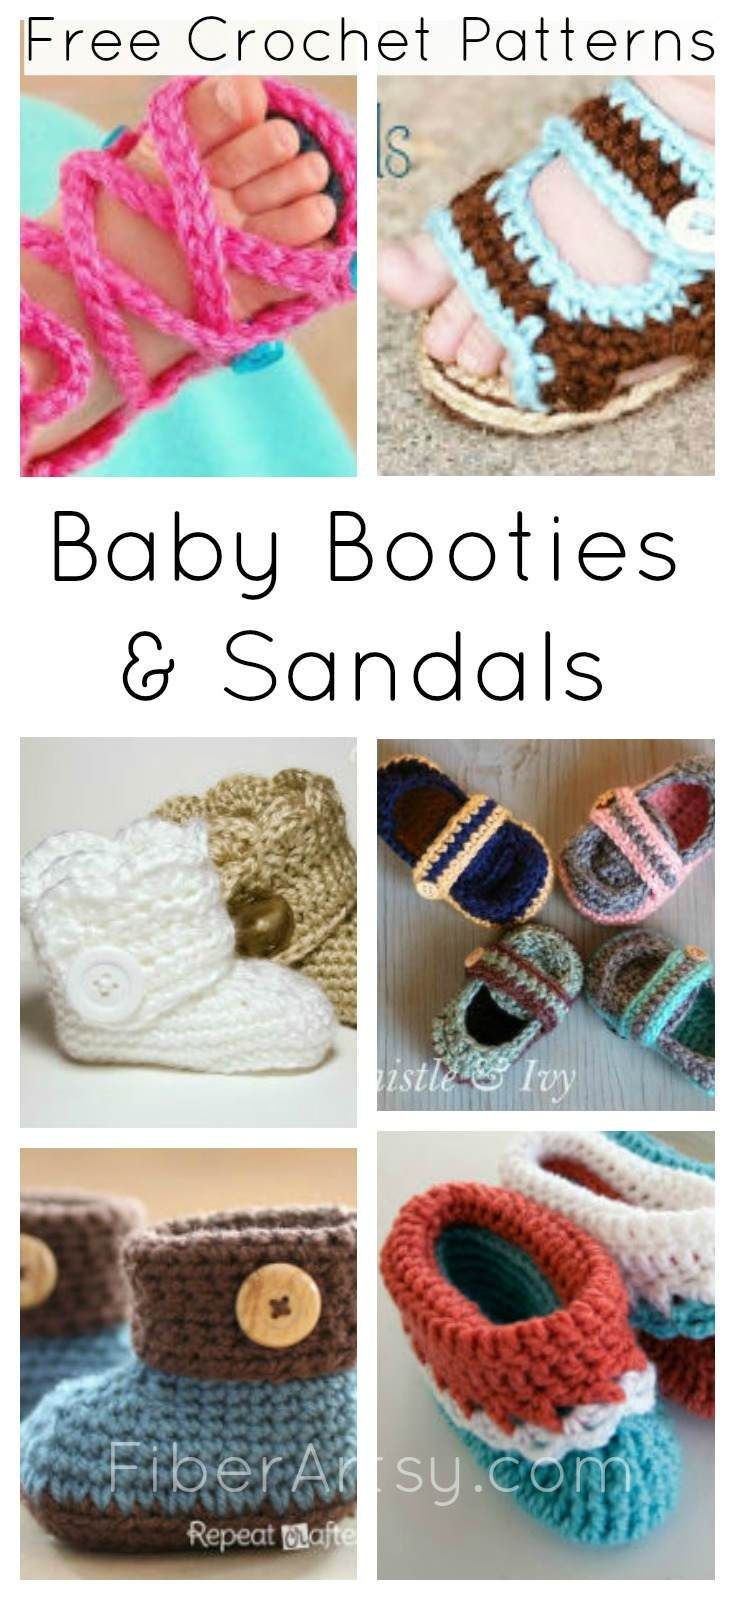 14 Free Baby Booty Crochet Patterns | Tejido y Costura